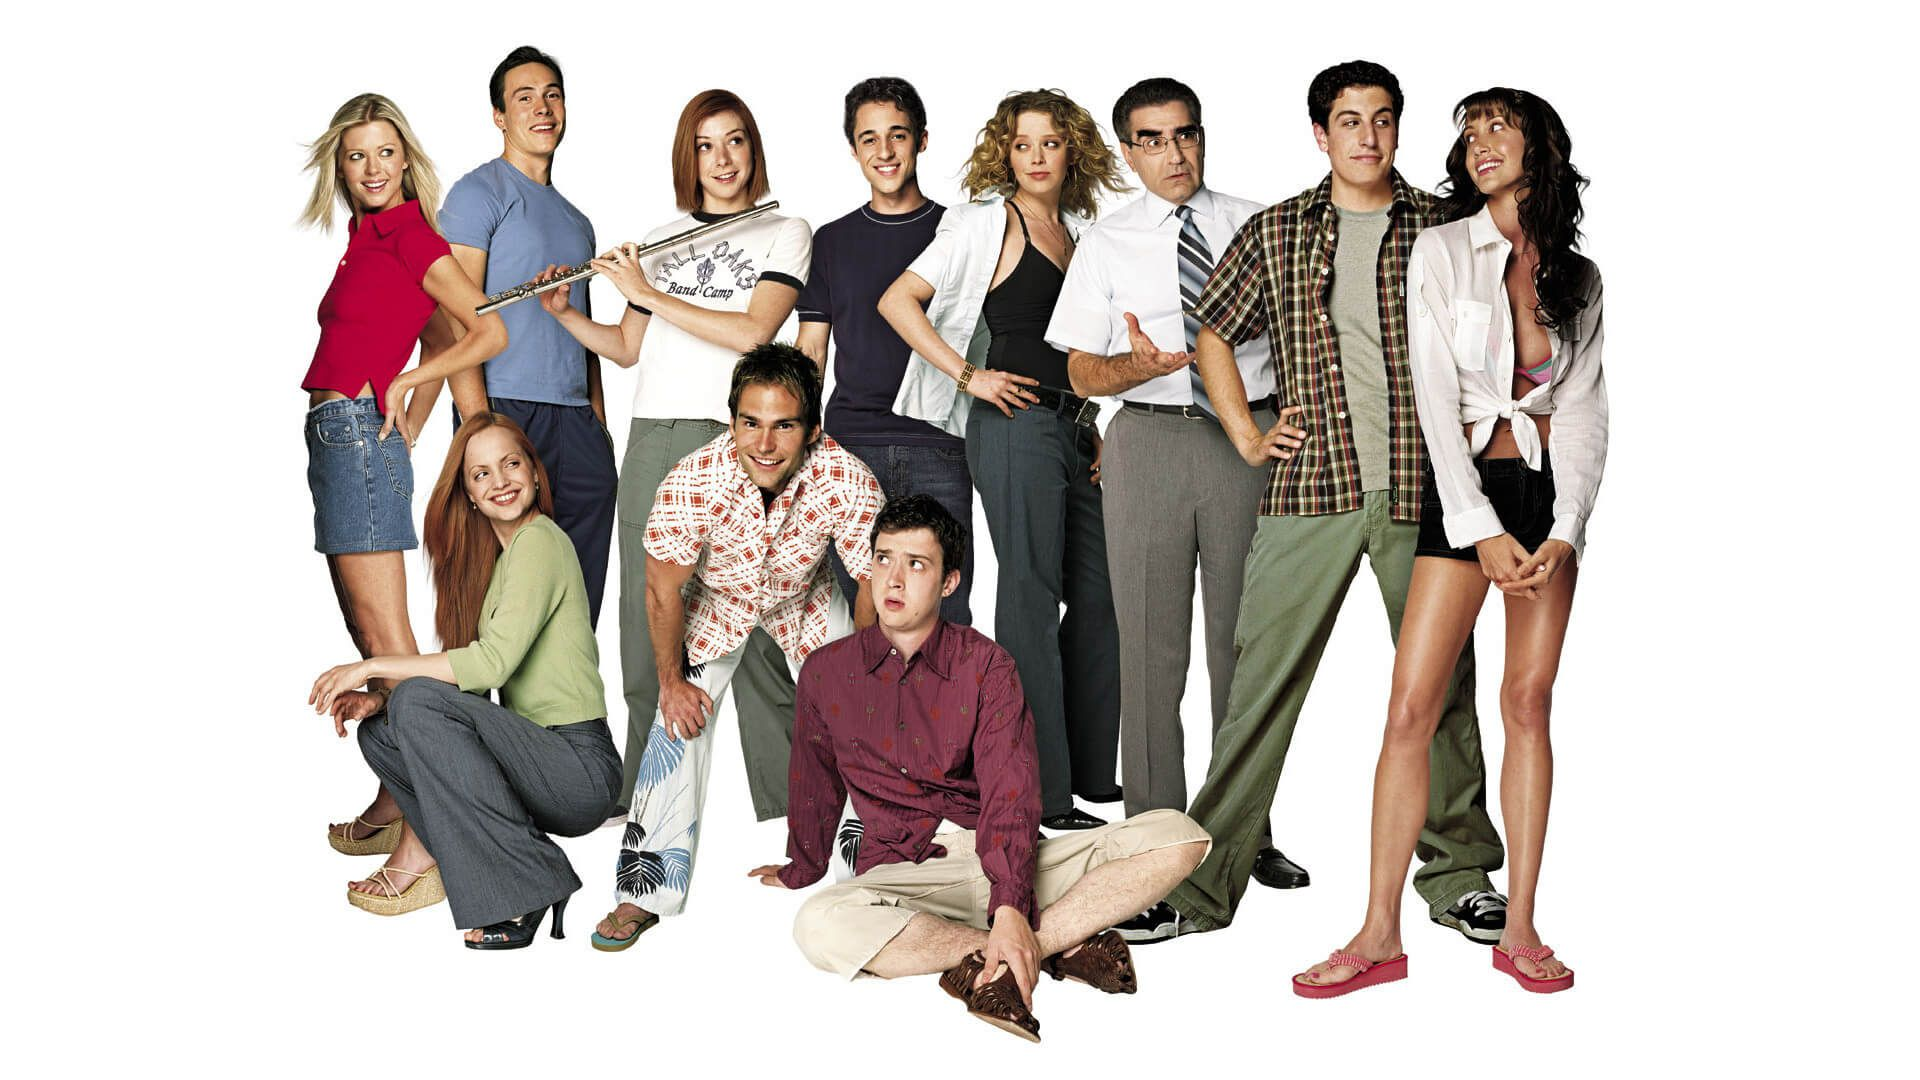 american pie cast then and now